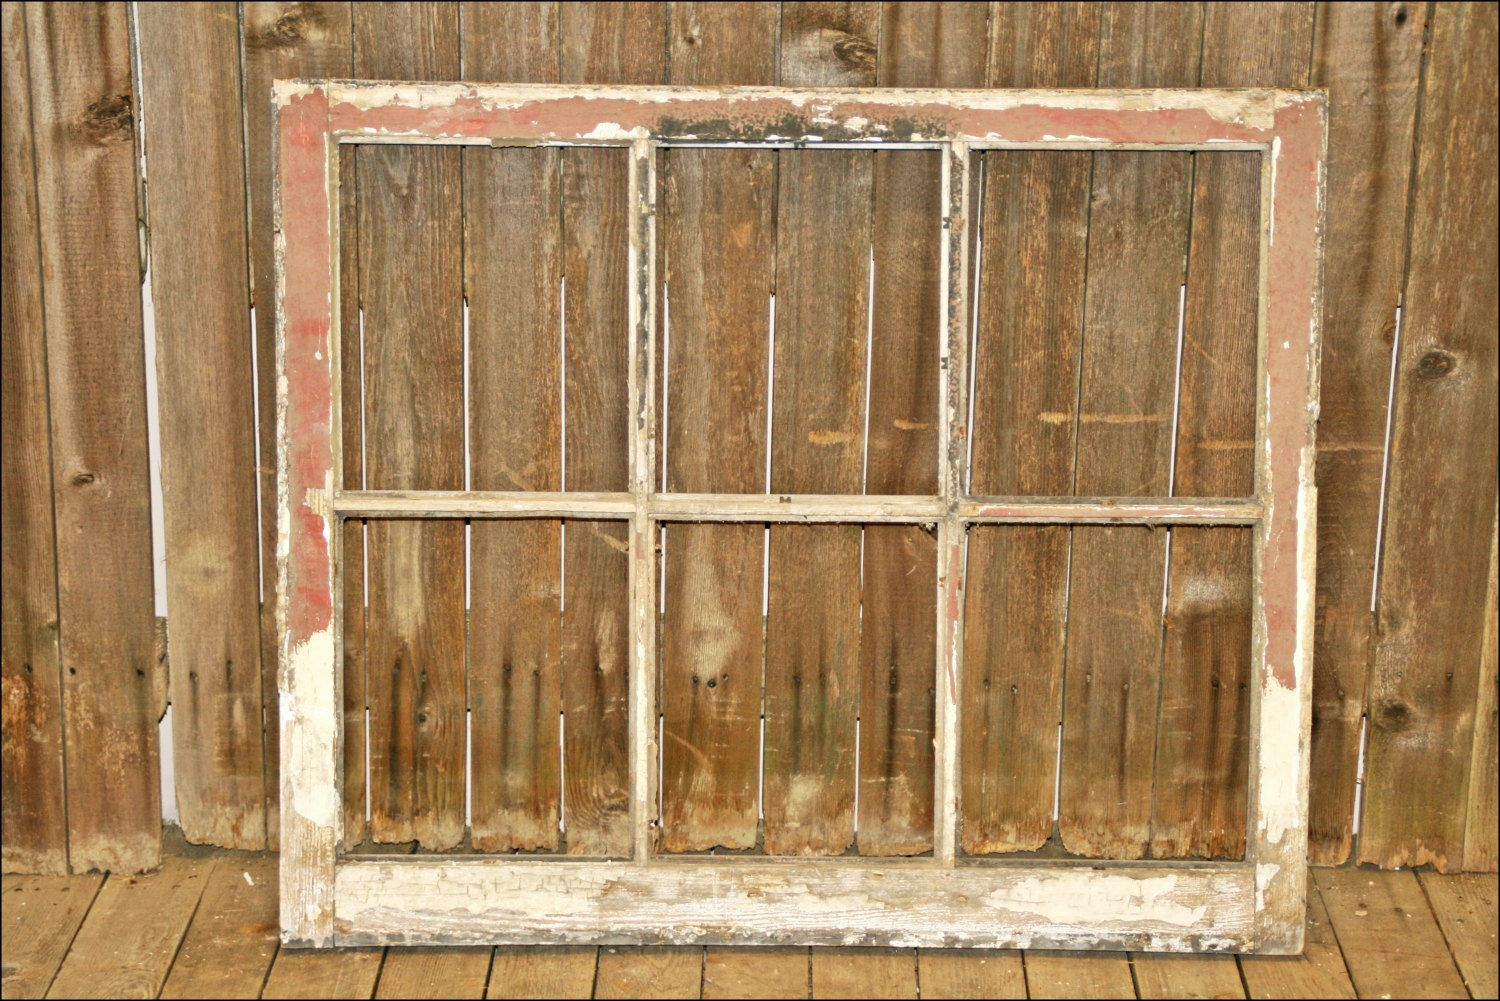 Vtg Wood Window sash 6 pane picture frame antique shabby salvage ...